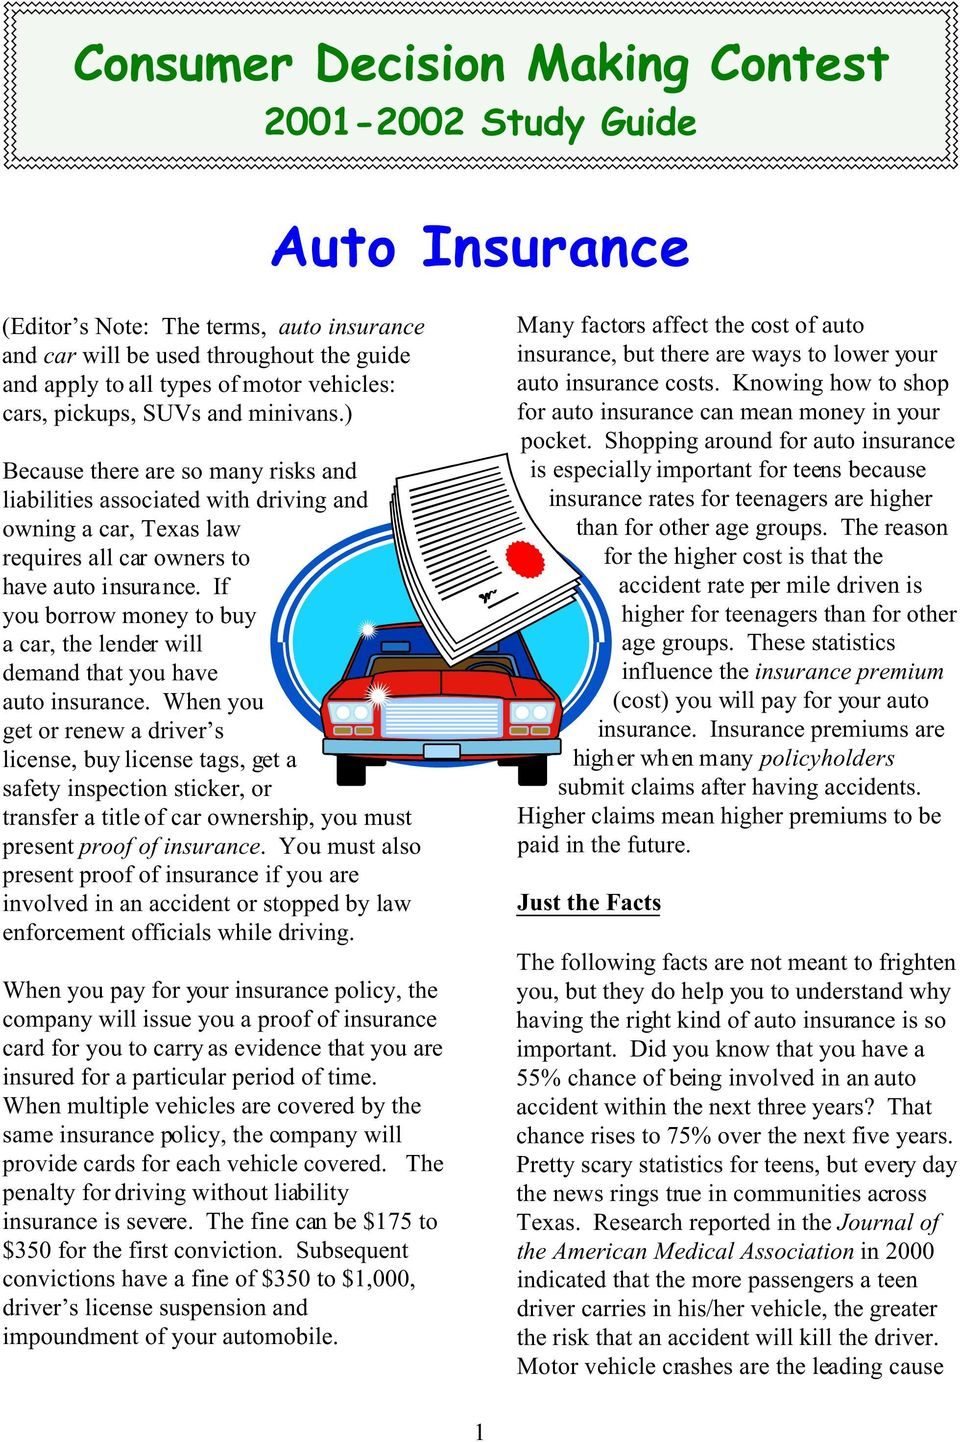 If you borrow money to buy a car, the lender will demand that you have auto insurance.